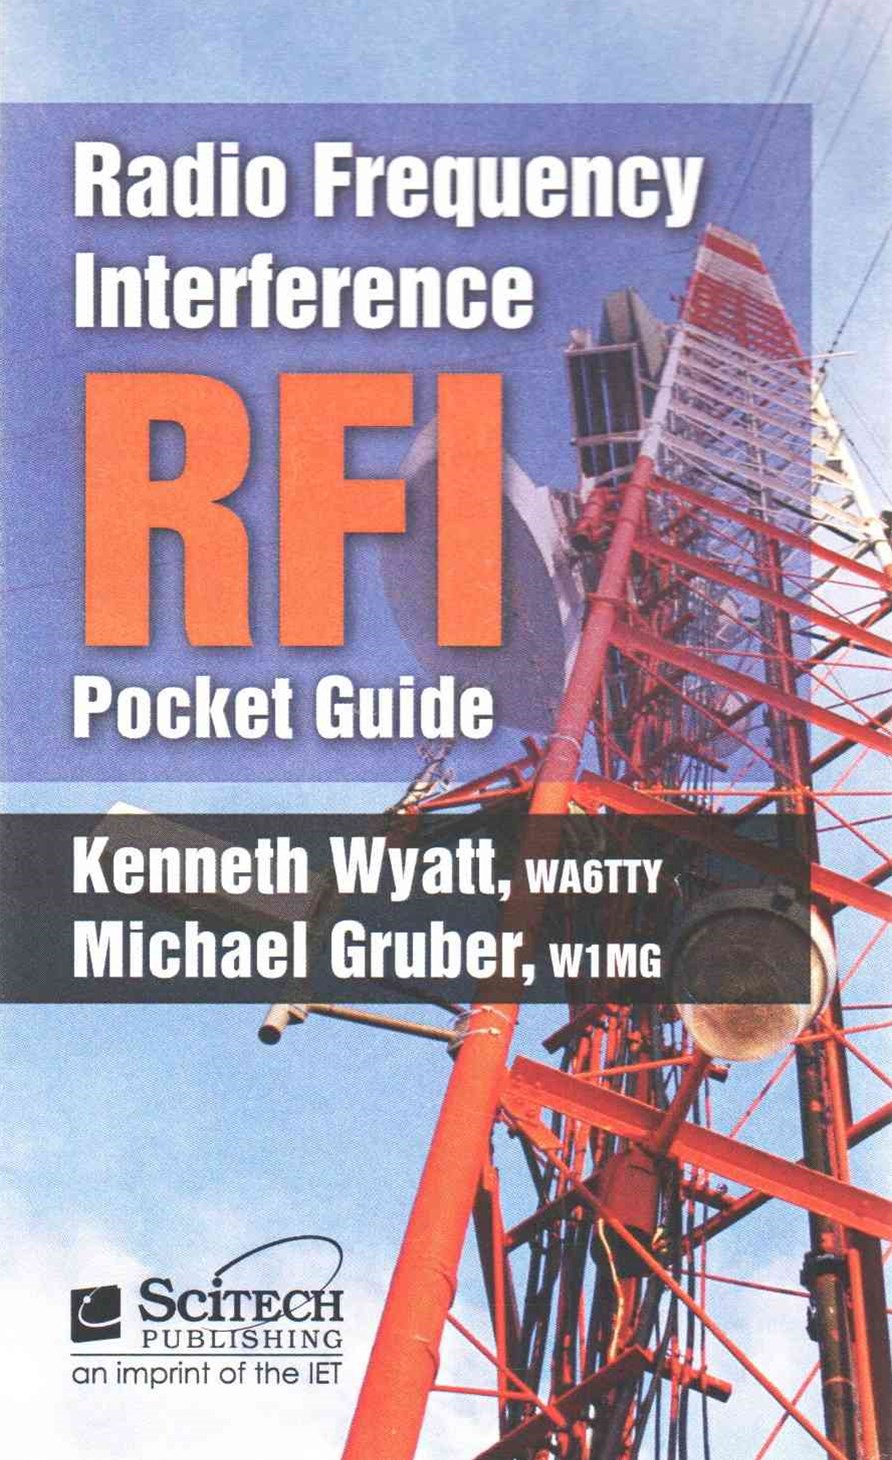 Radio Frequency Interference: Pocket Guide